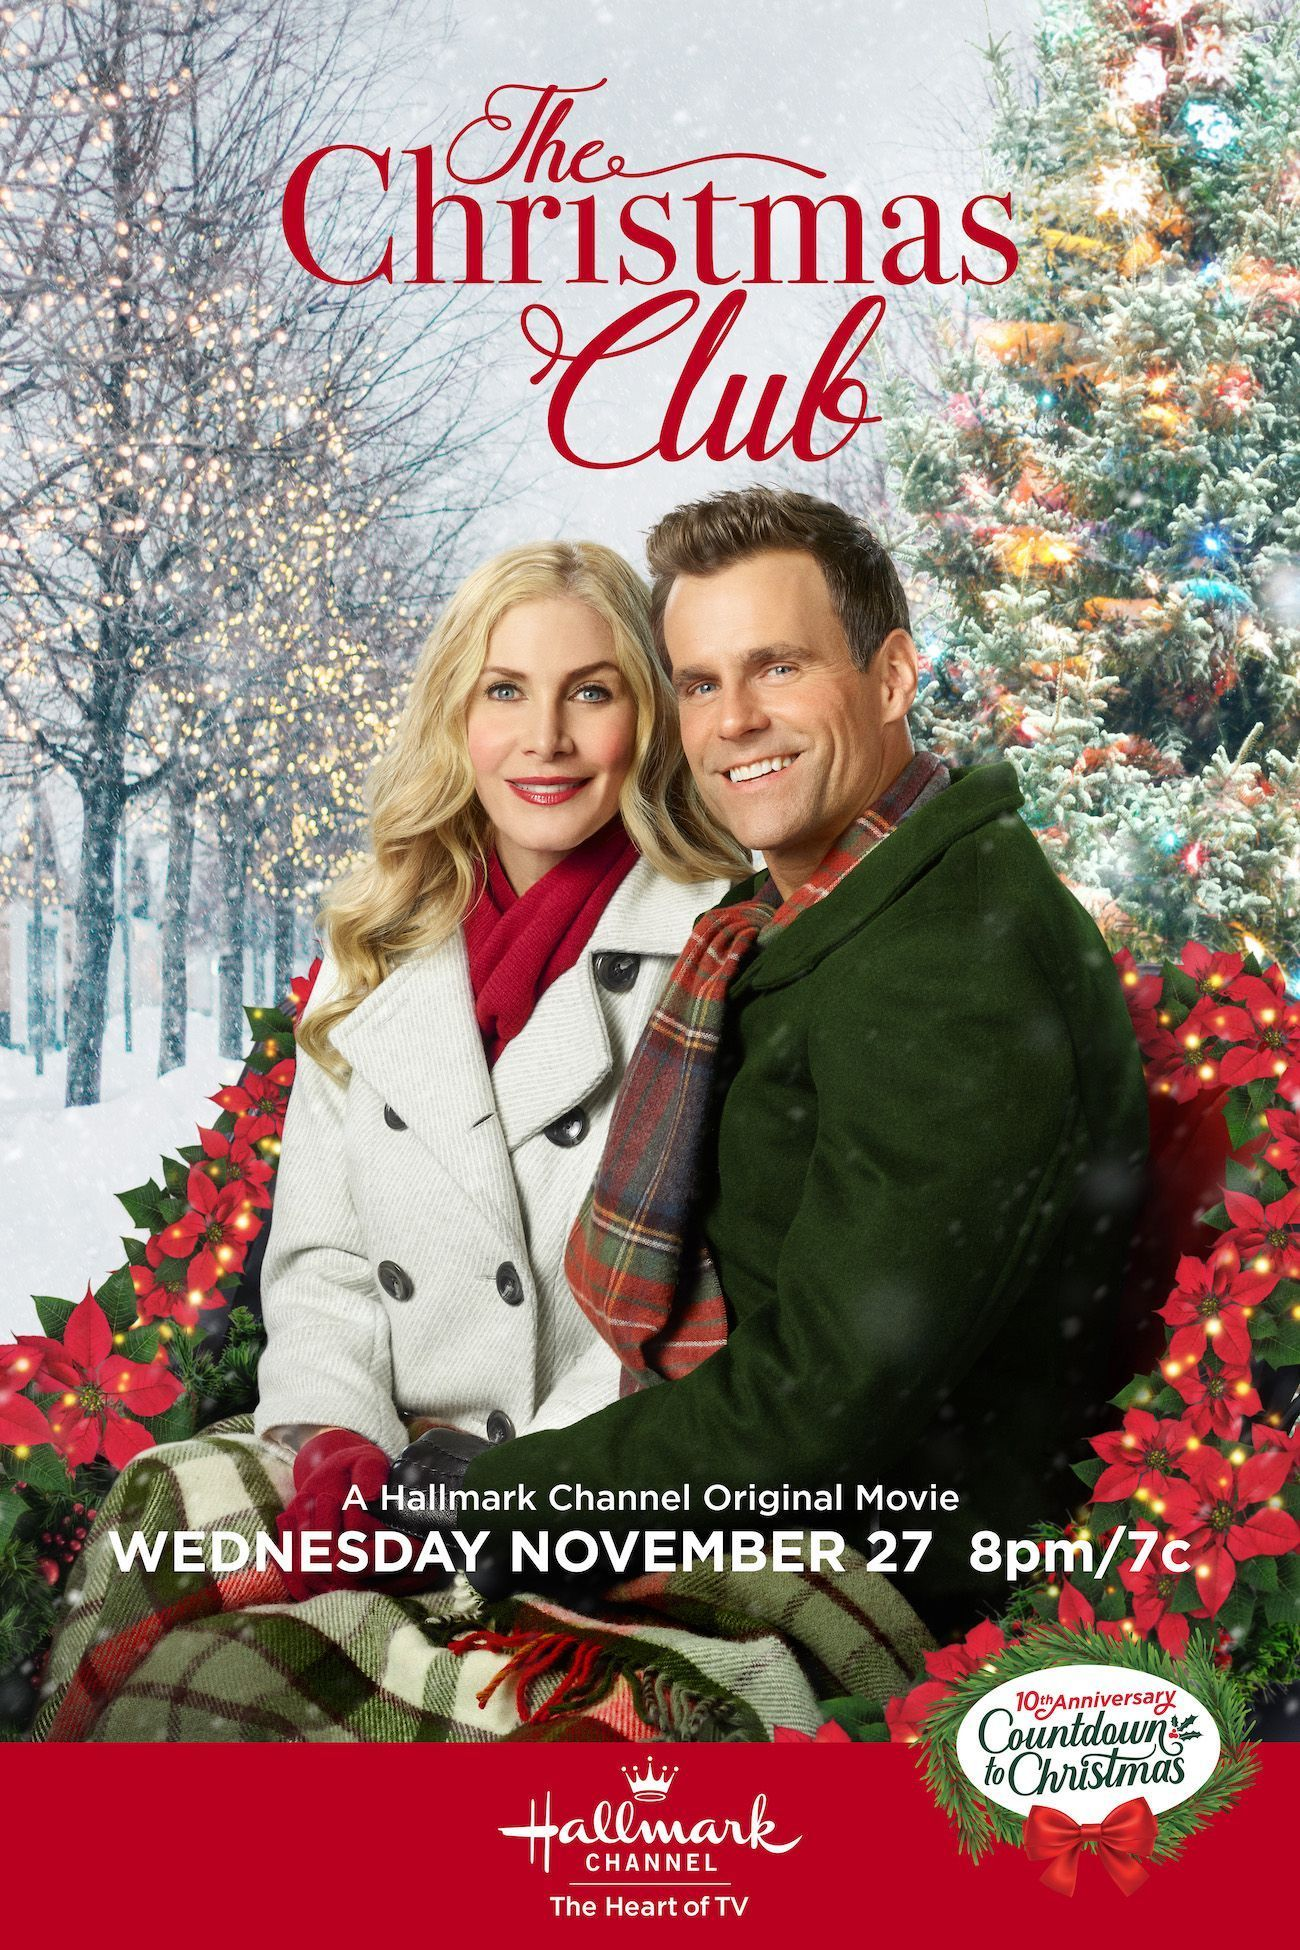 Cameron Mathison And Elizabeth Mitchell Star In The Christmas Club Premieri Hallmark Channel Christmas Movies Christmas Movies On Tv Hallmark Movies Romance